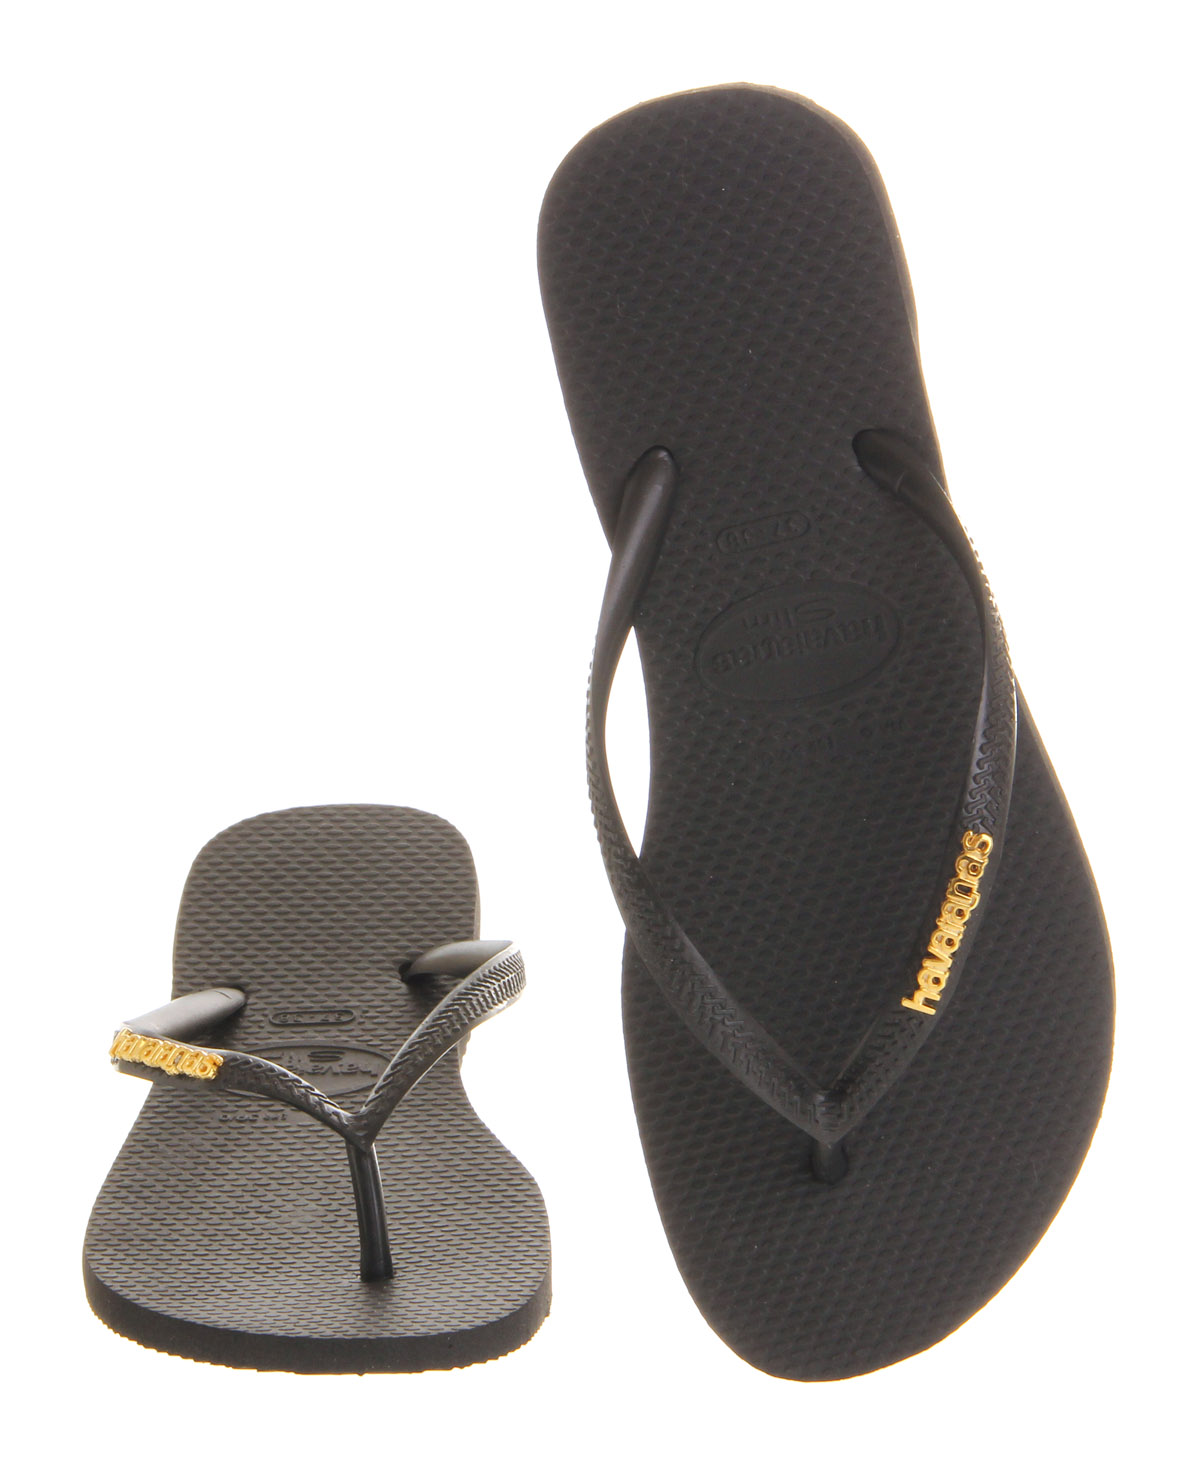 65e280614281 Womens Havaianas Slim Logo Metallic Smu BLACK GOLD Sandals